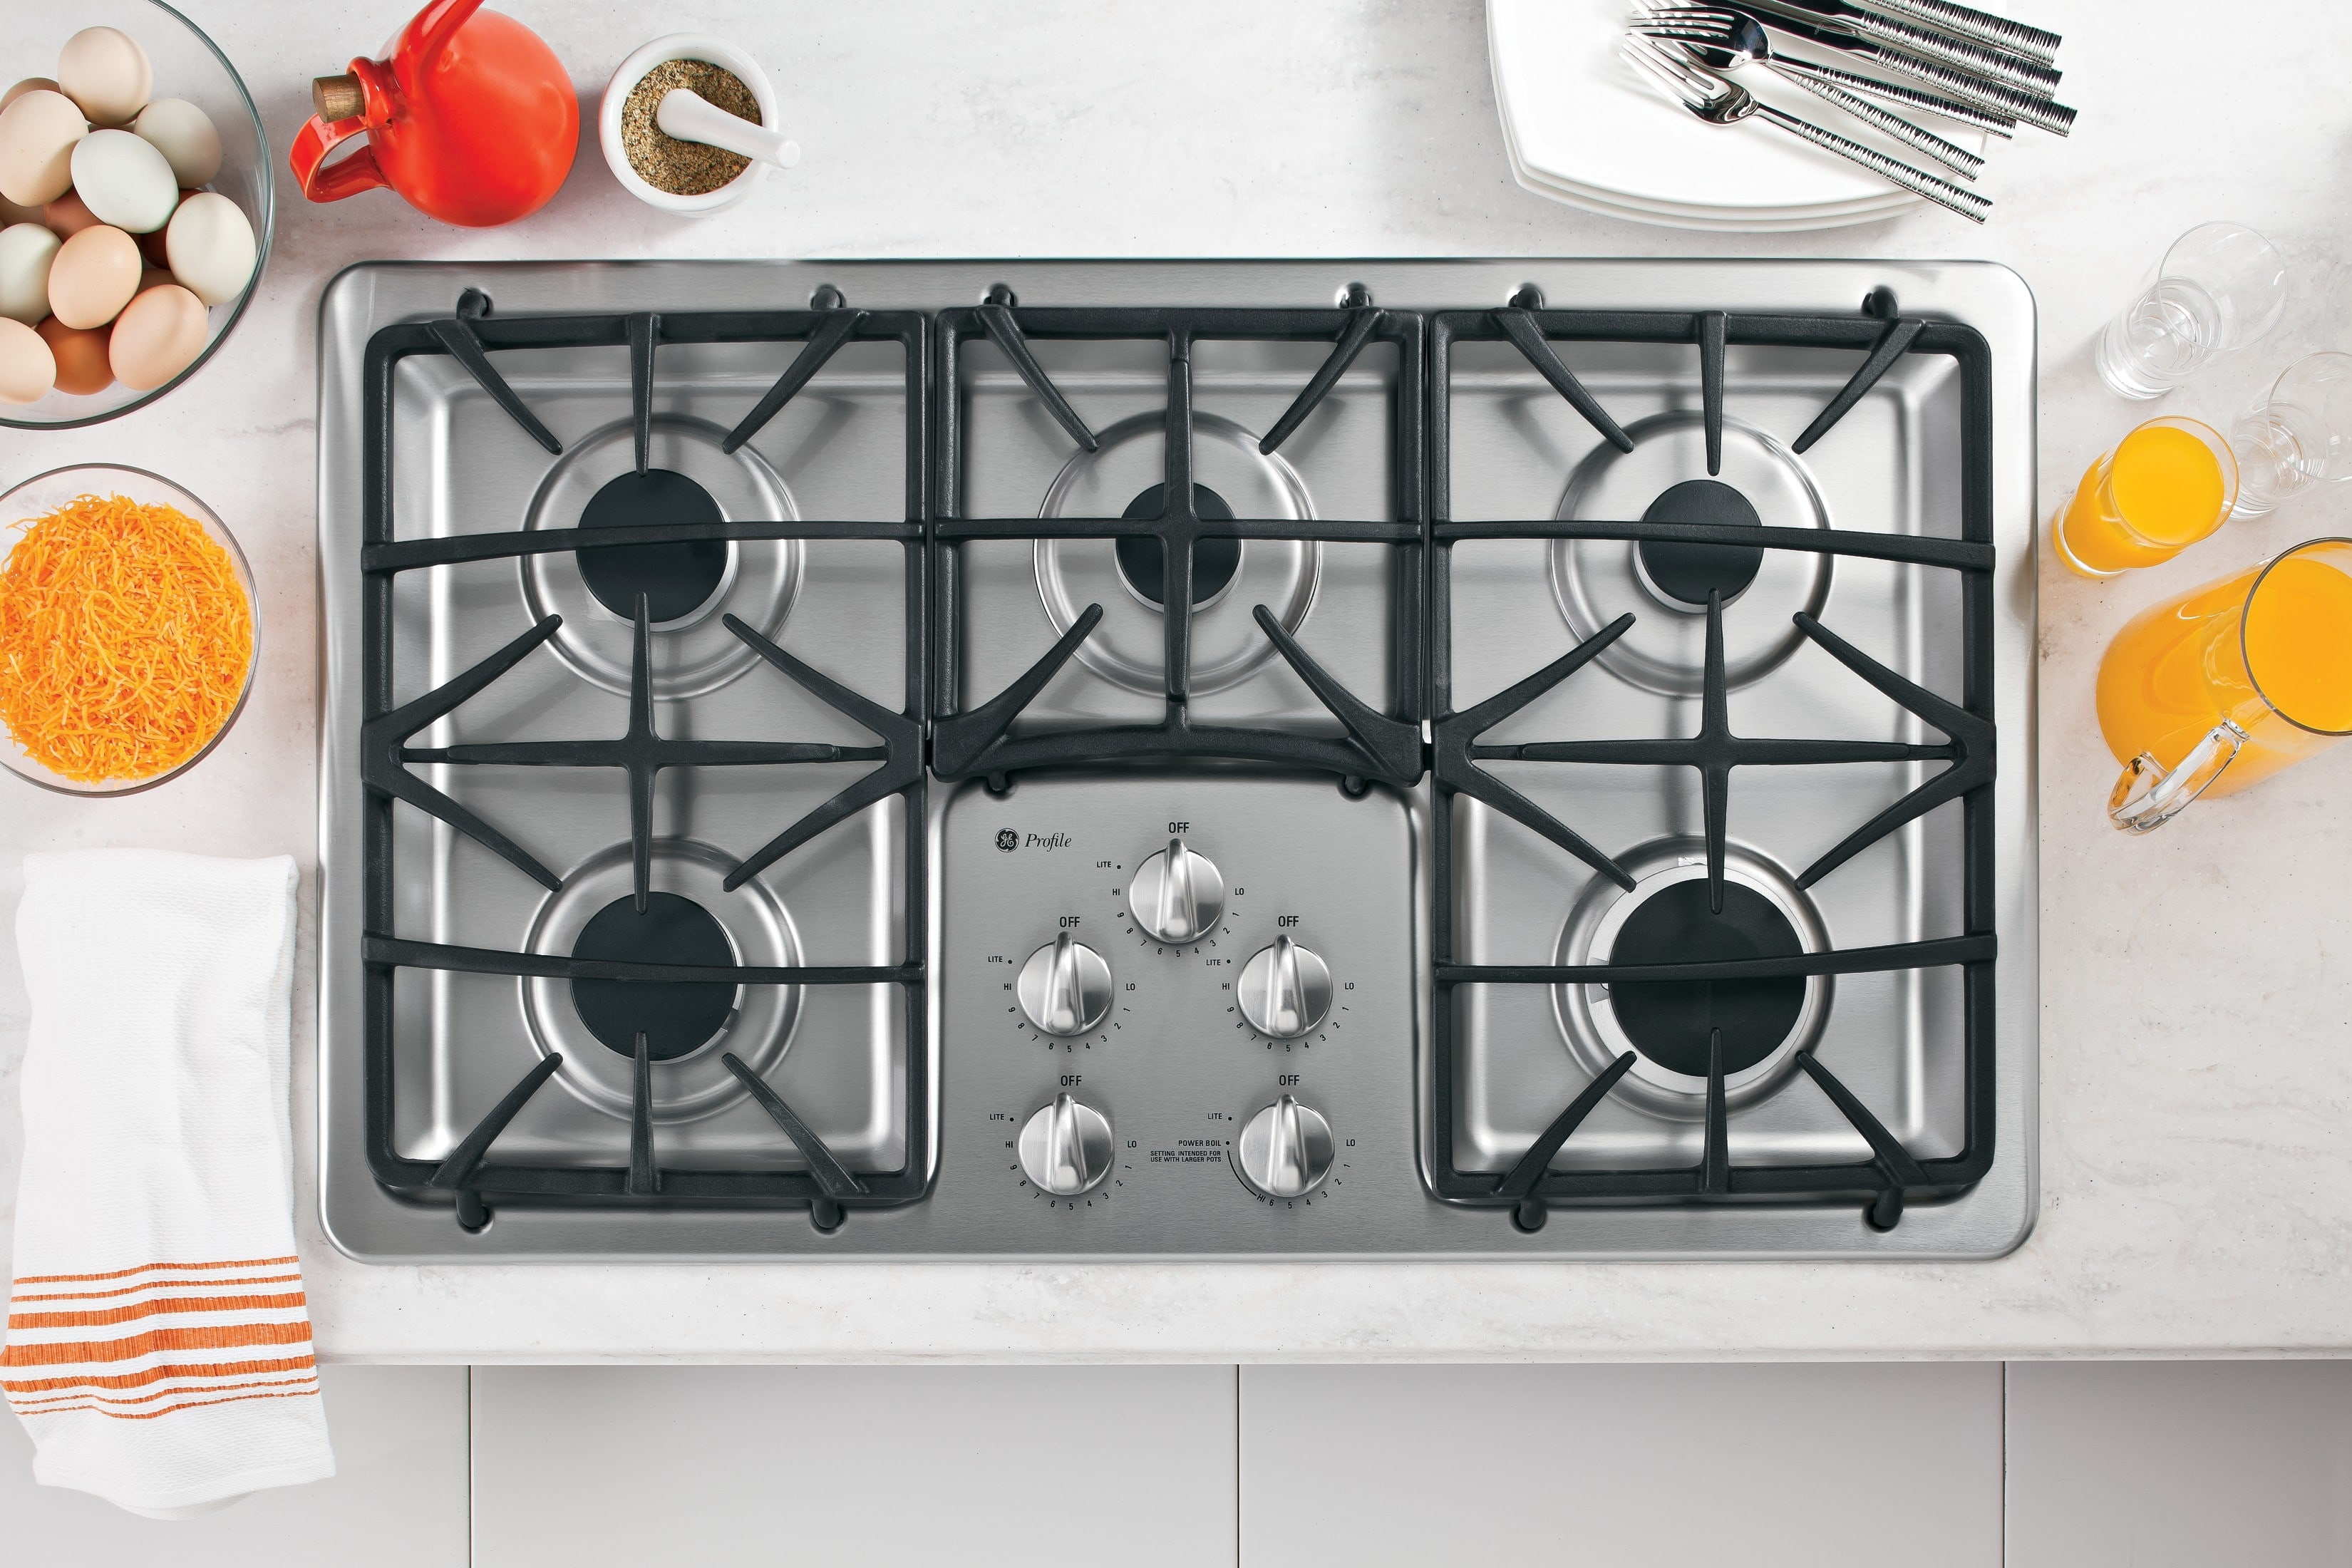 Ge Pgp966setss 36 Inch Gas Cooktop With 5 Sealed Burners